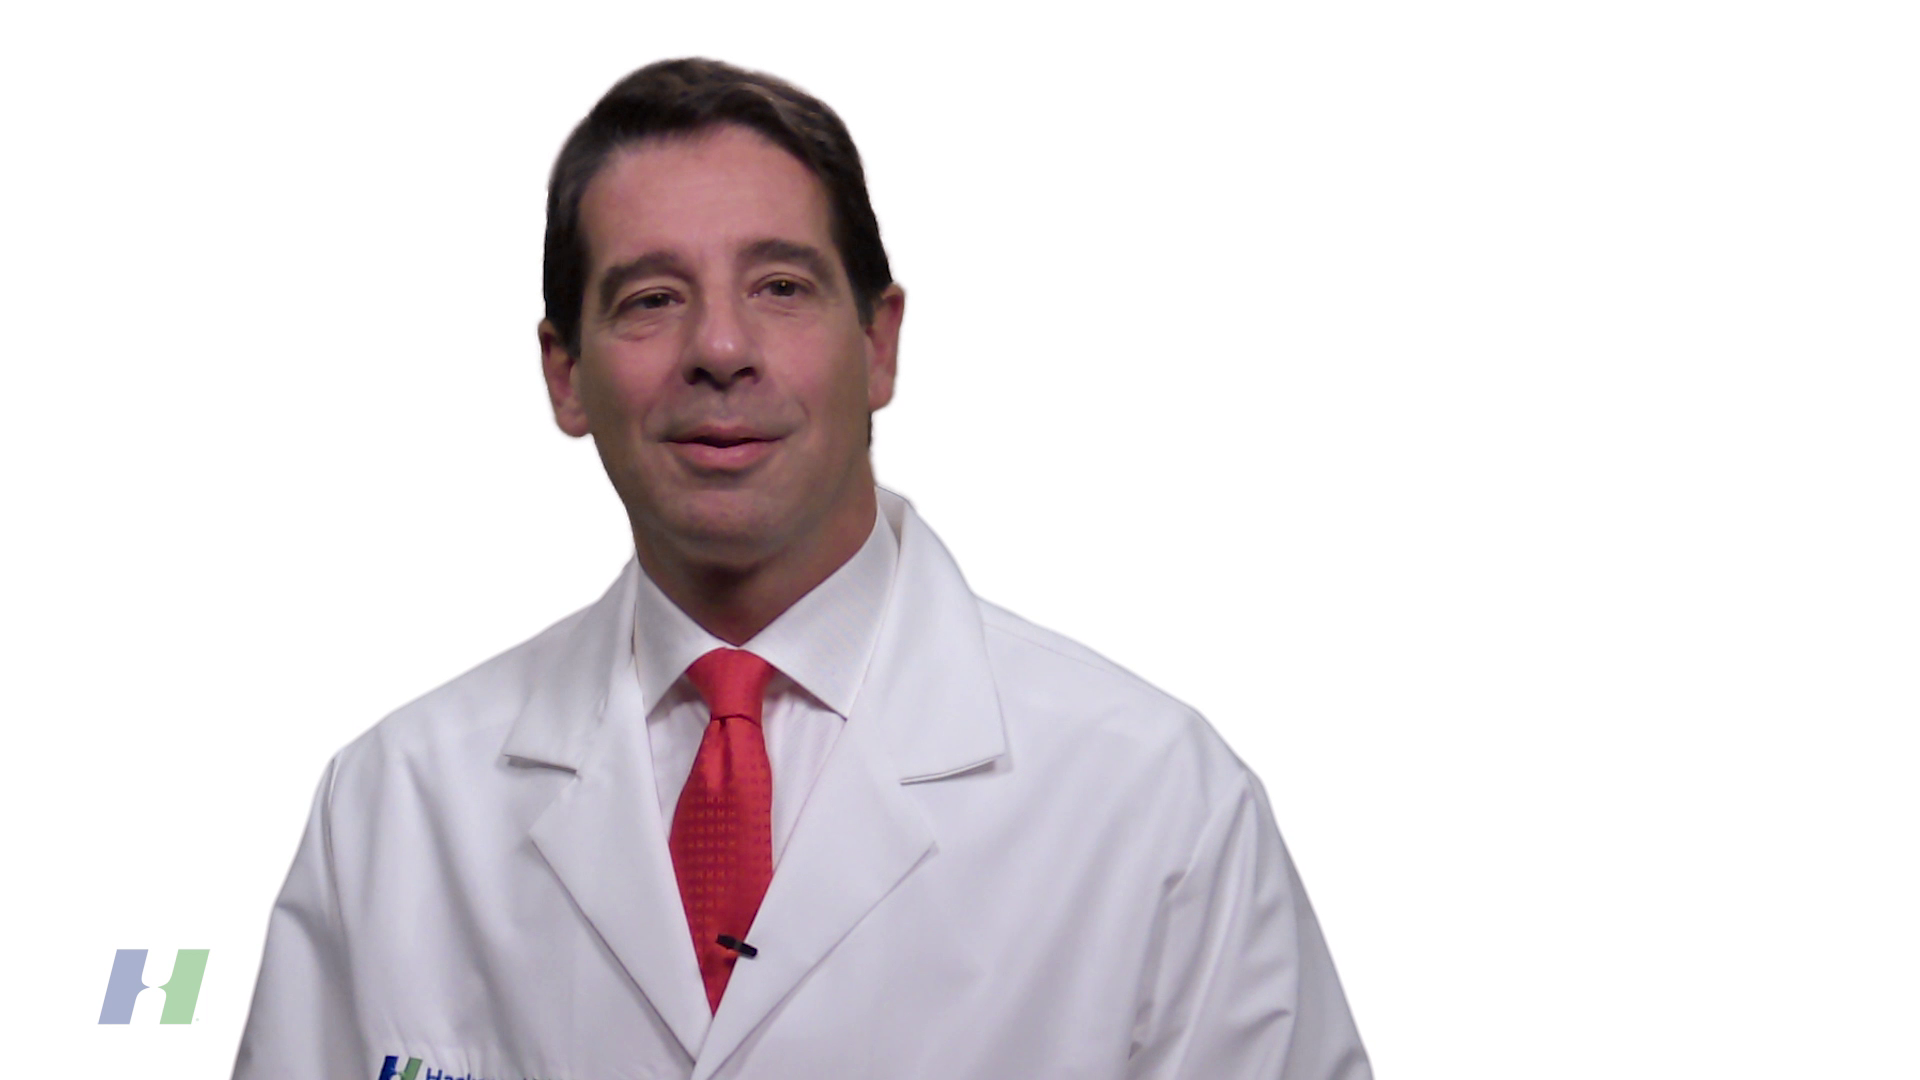 Dr. Napolitano talks about his practice